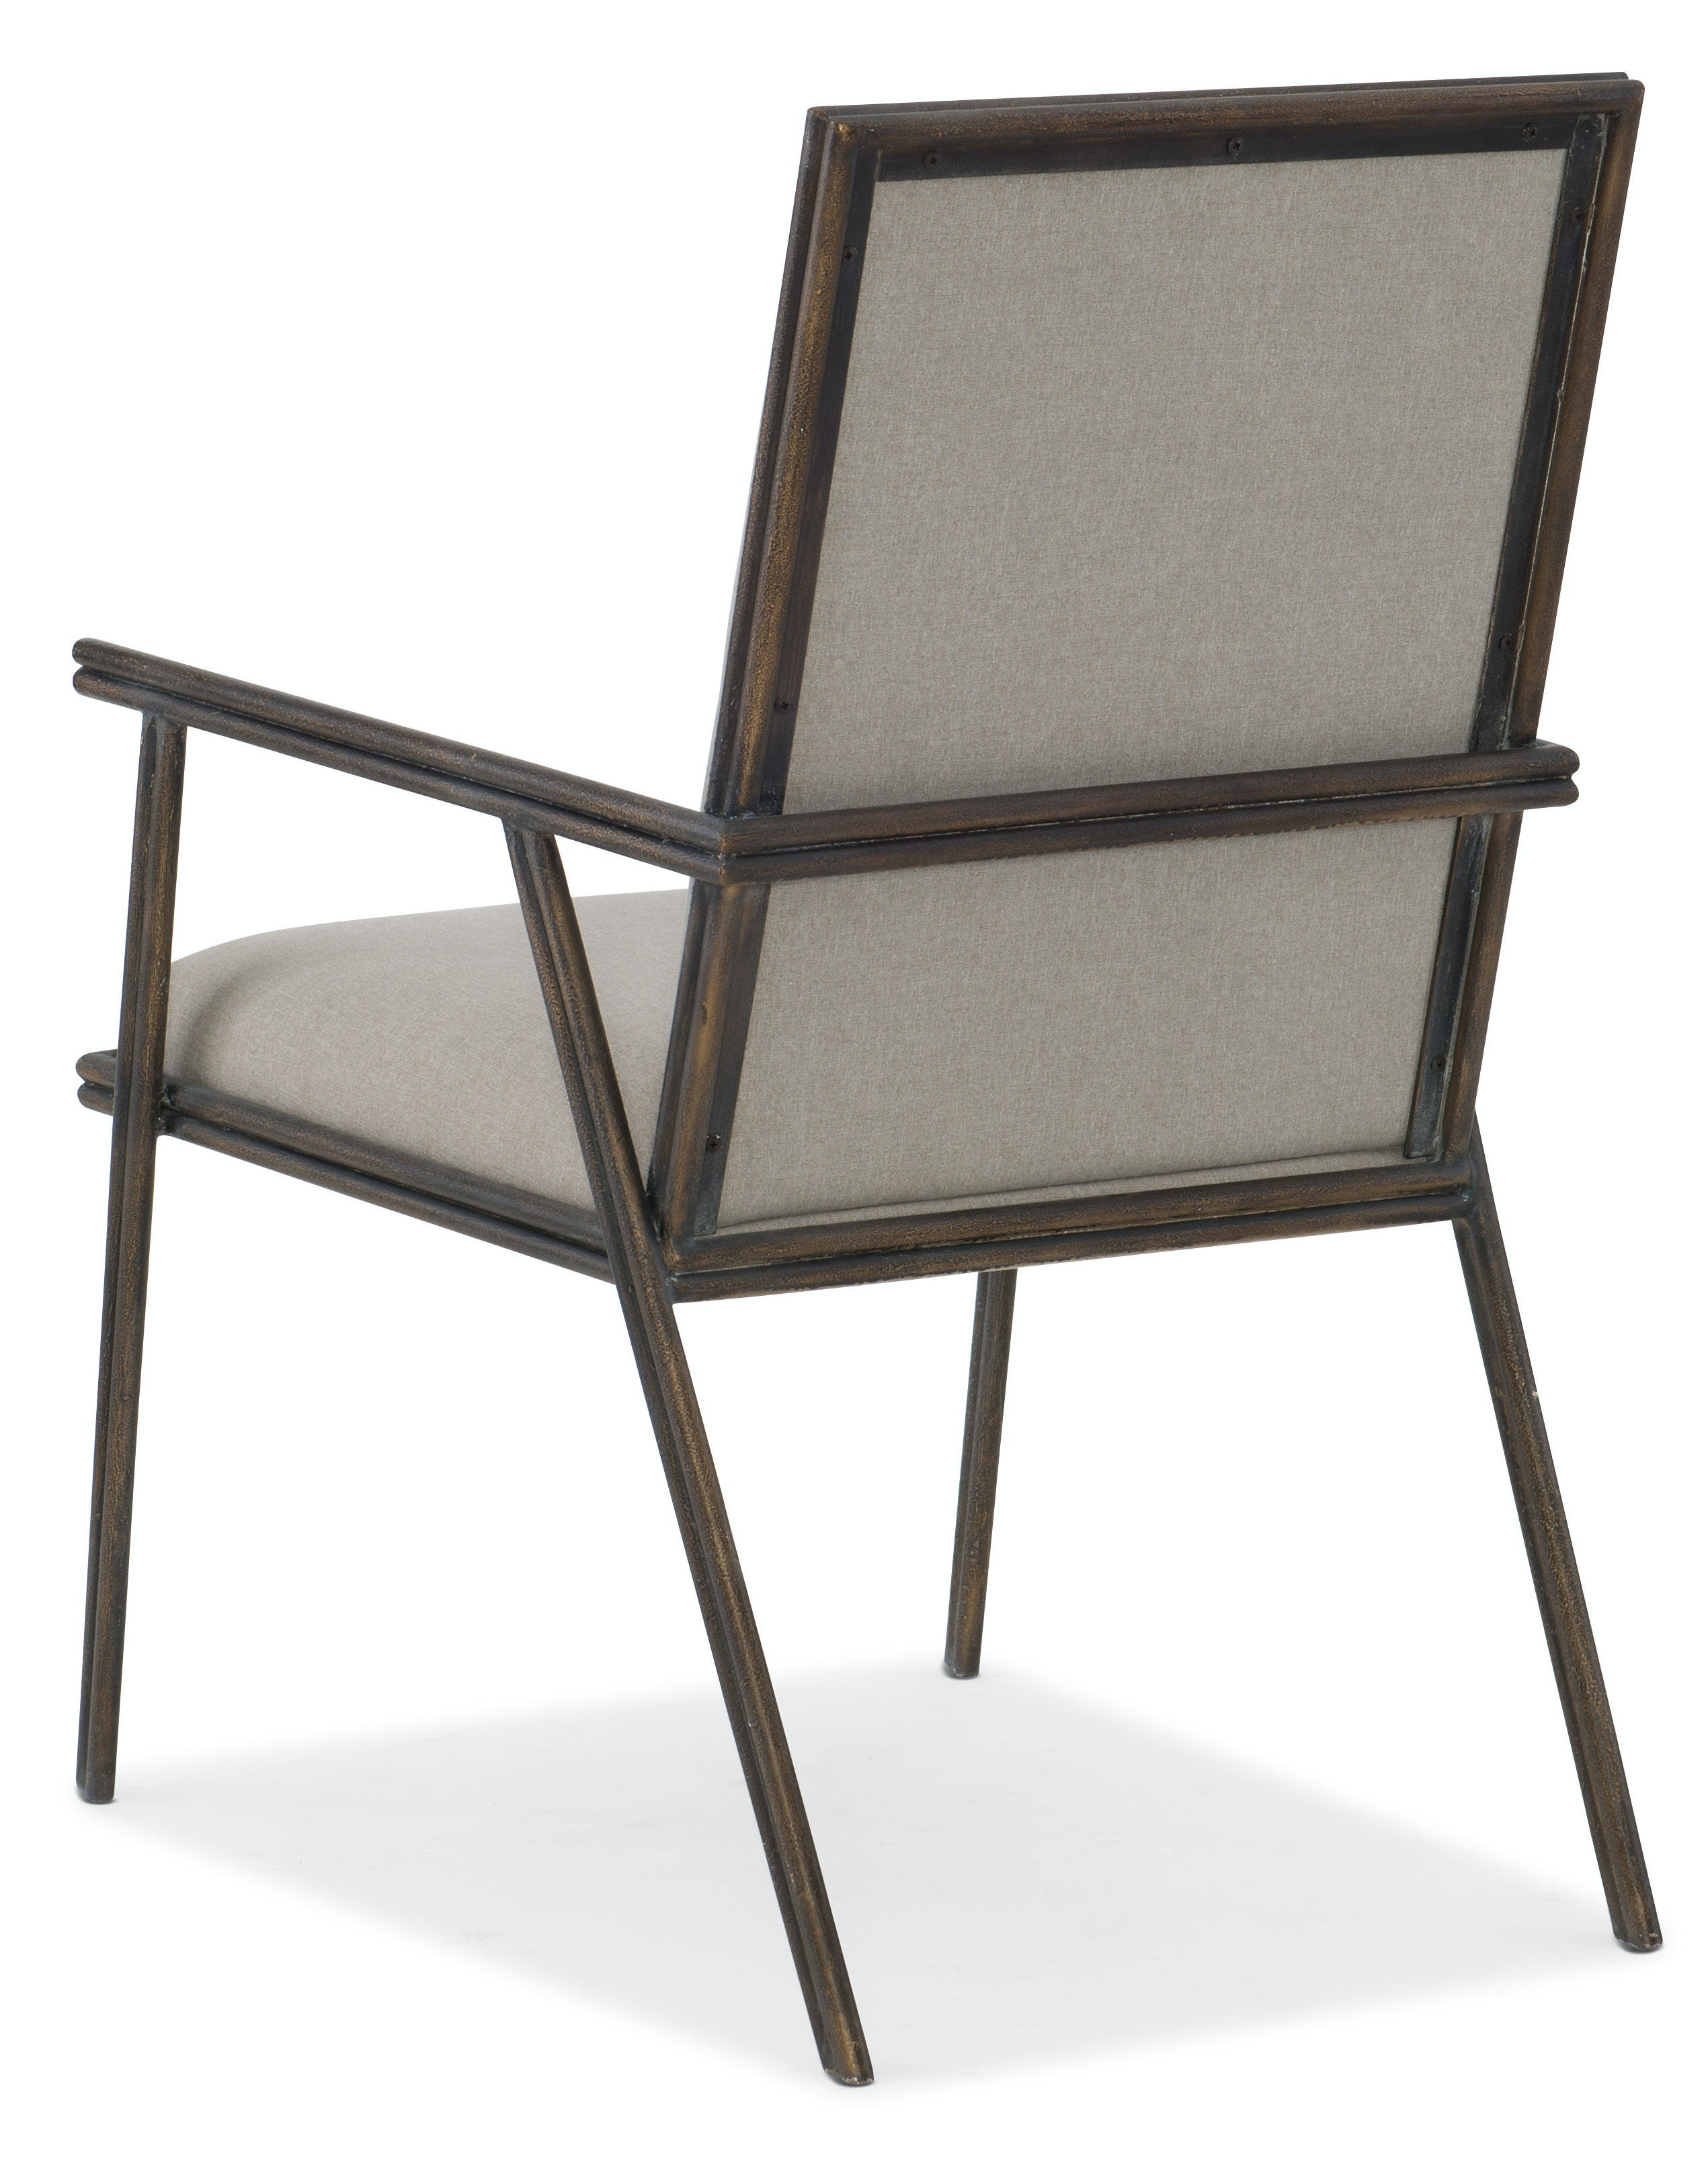 Hooker Furniture Miramar Carmel Fairview Metal Upholstered Arm Chair  6200 75401 GRY